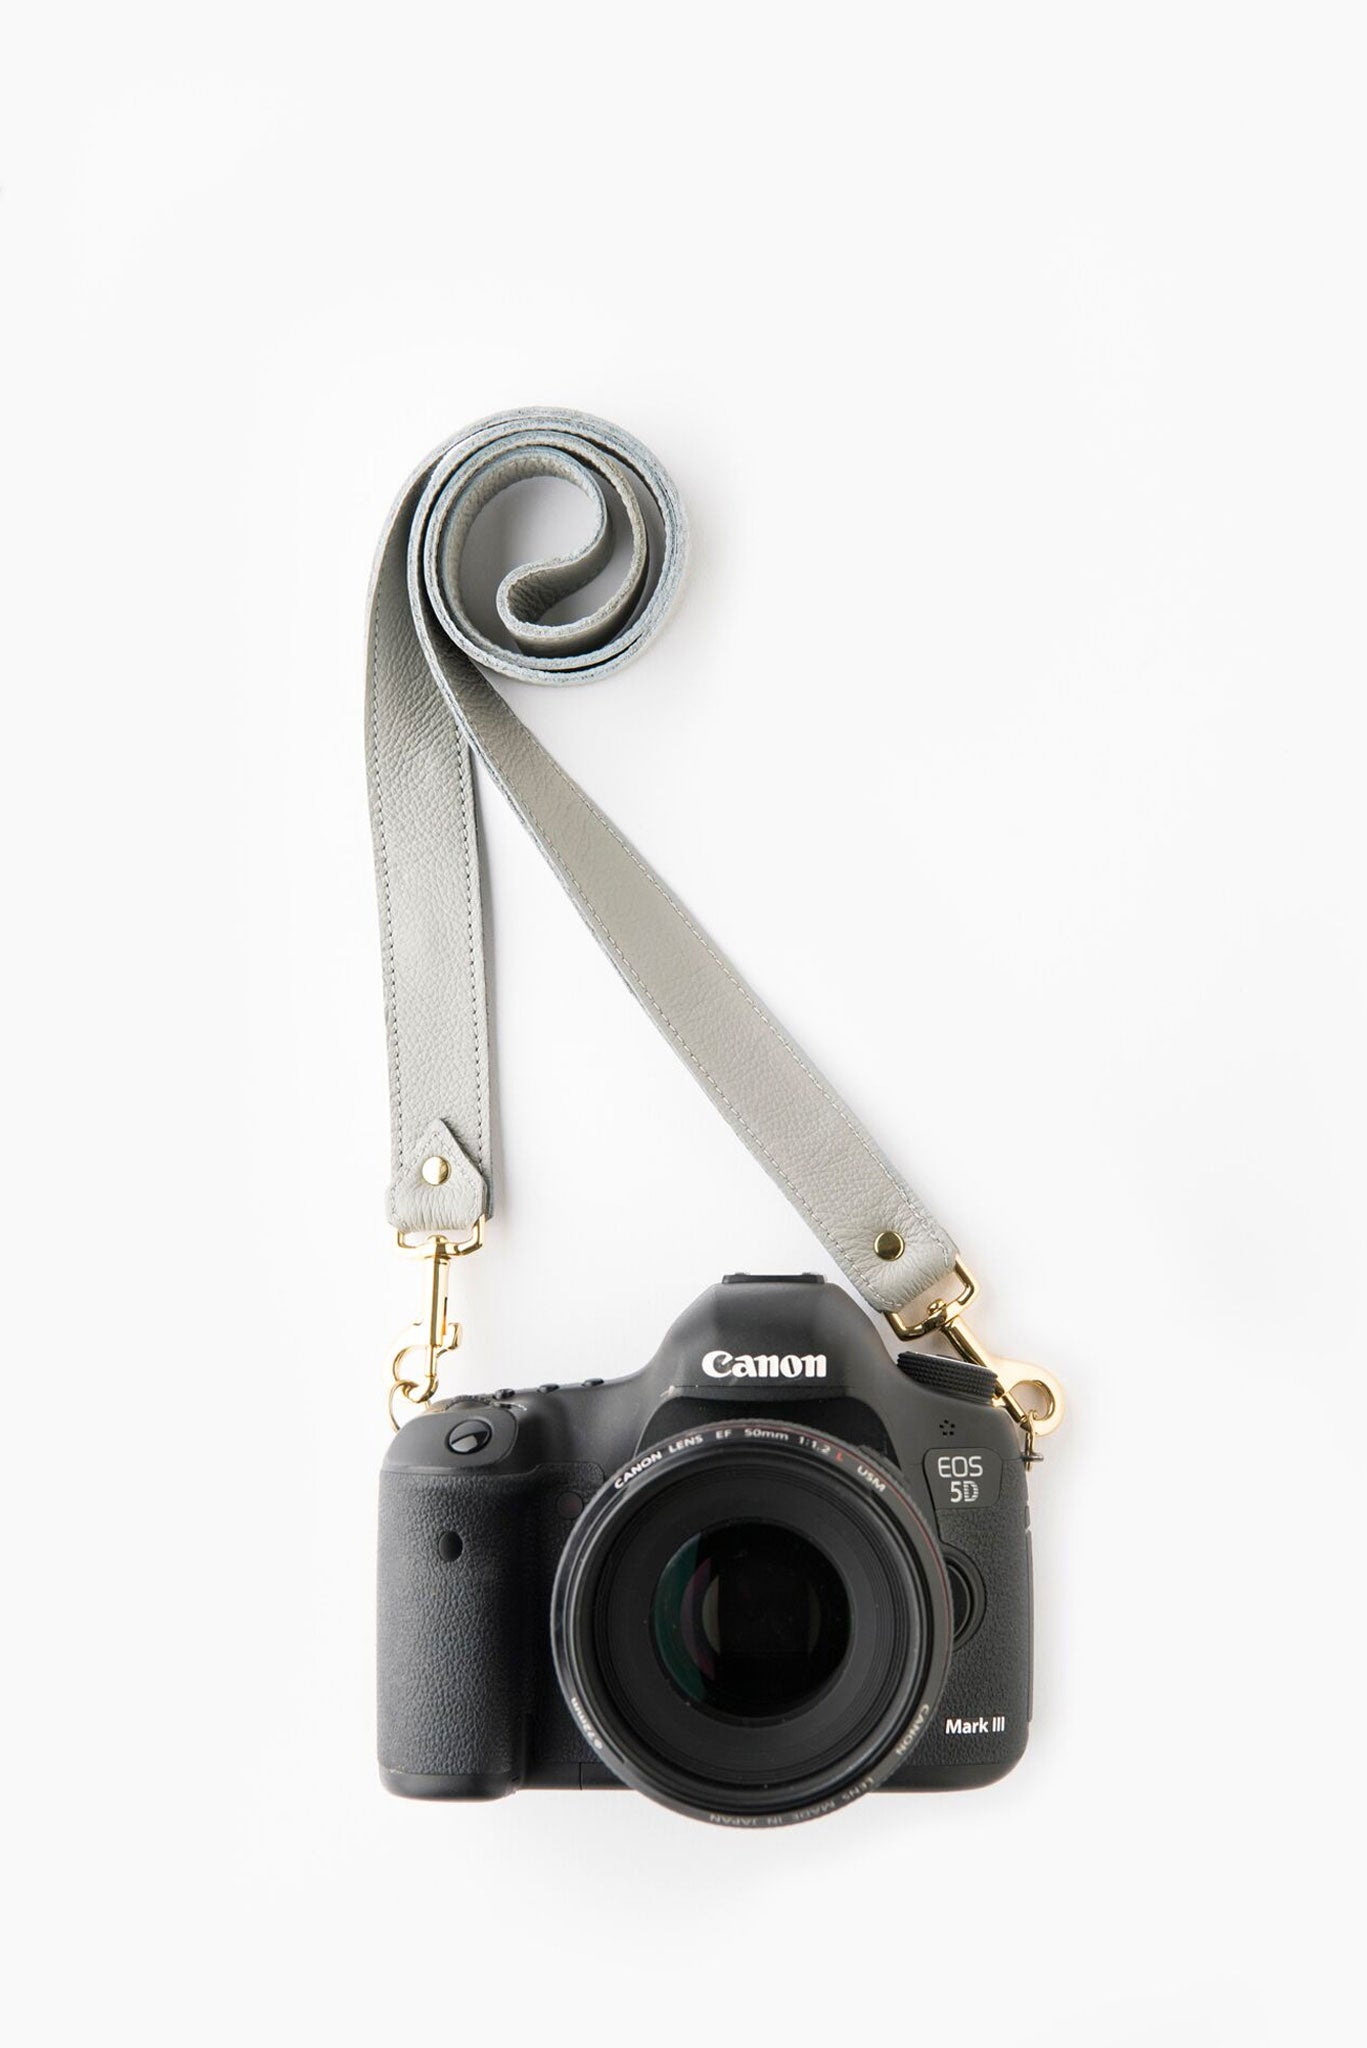 FOTO | The Designer in Dove - a dove grey genuine pebbled leather camera strap that can be personalized with a monogram or business logo, making this leather camera strap the perfect personalized gift.